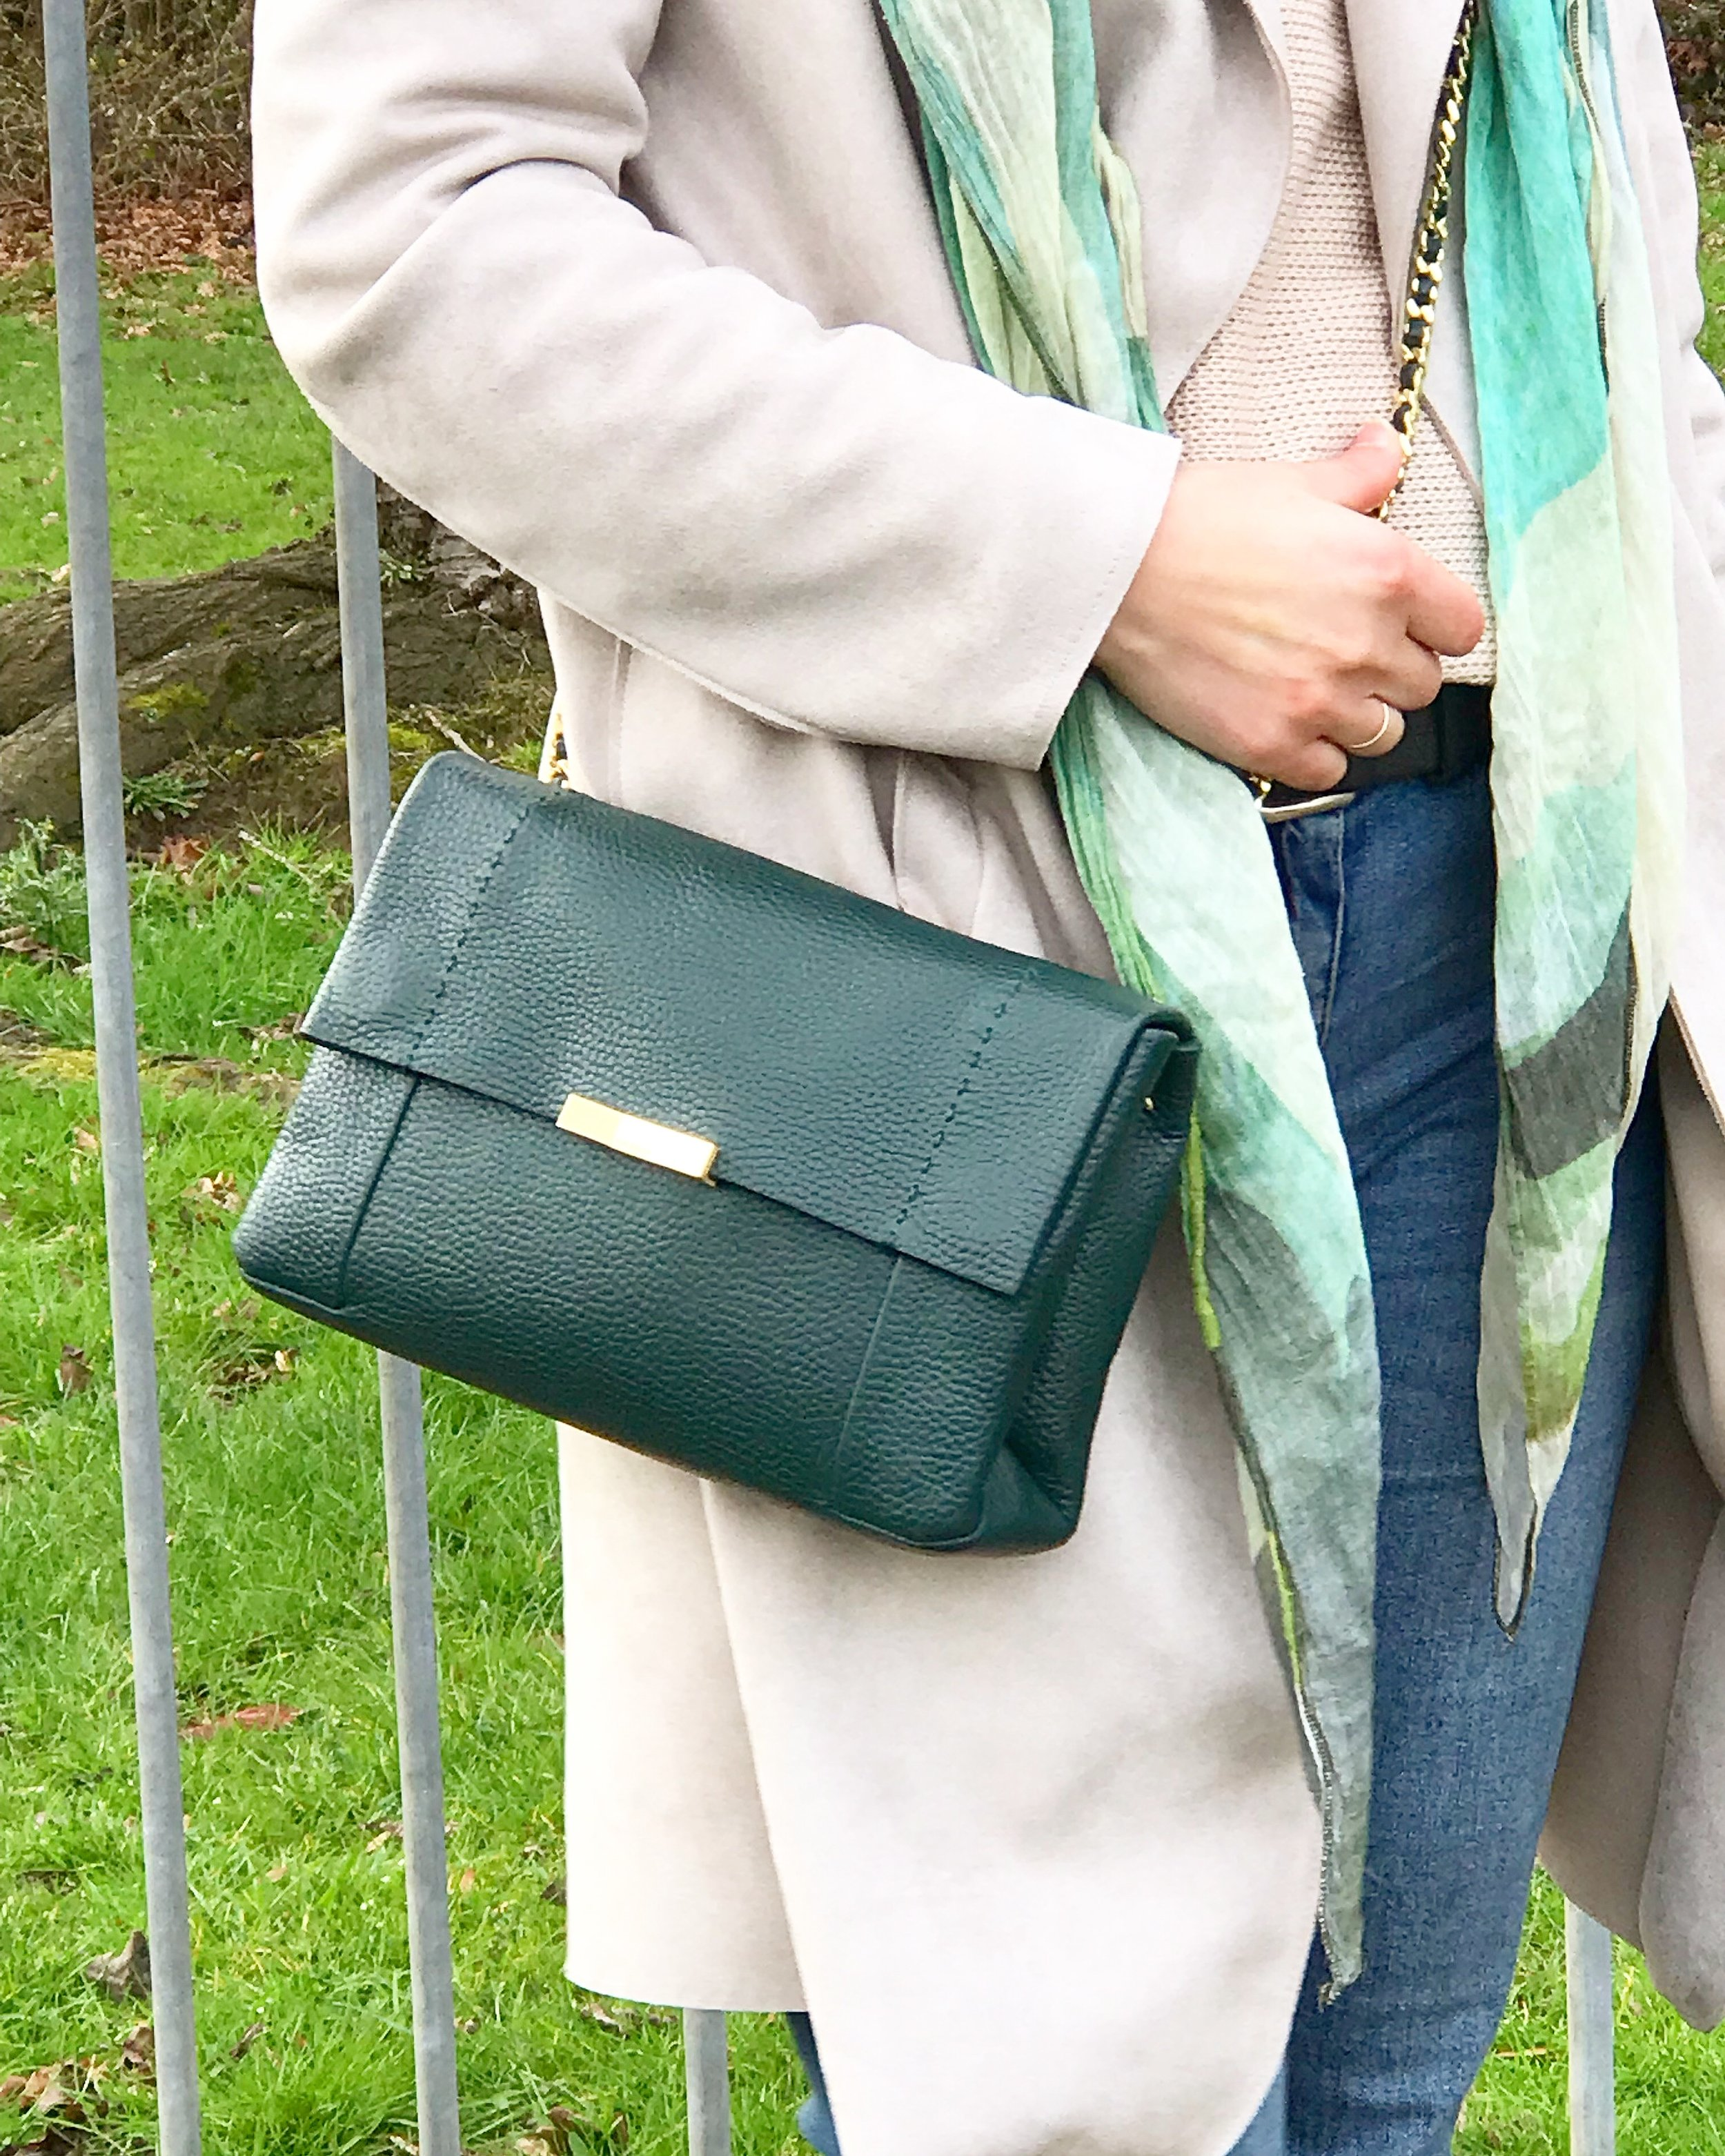 I used to wear only big bags… now I'm in love with crossbody bags and this one is perfect! It was a Christmas present. It's the perfect size and shape! Obviously when I go to work I always take a backpack with me too! Lol! Why do we always have to carry so much stuff with us?